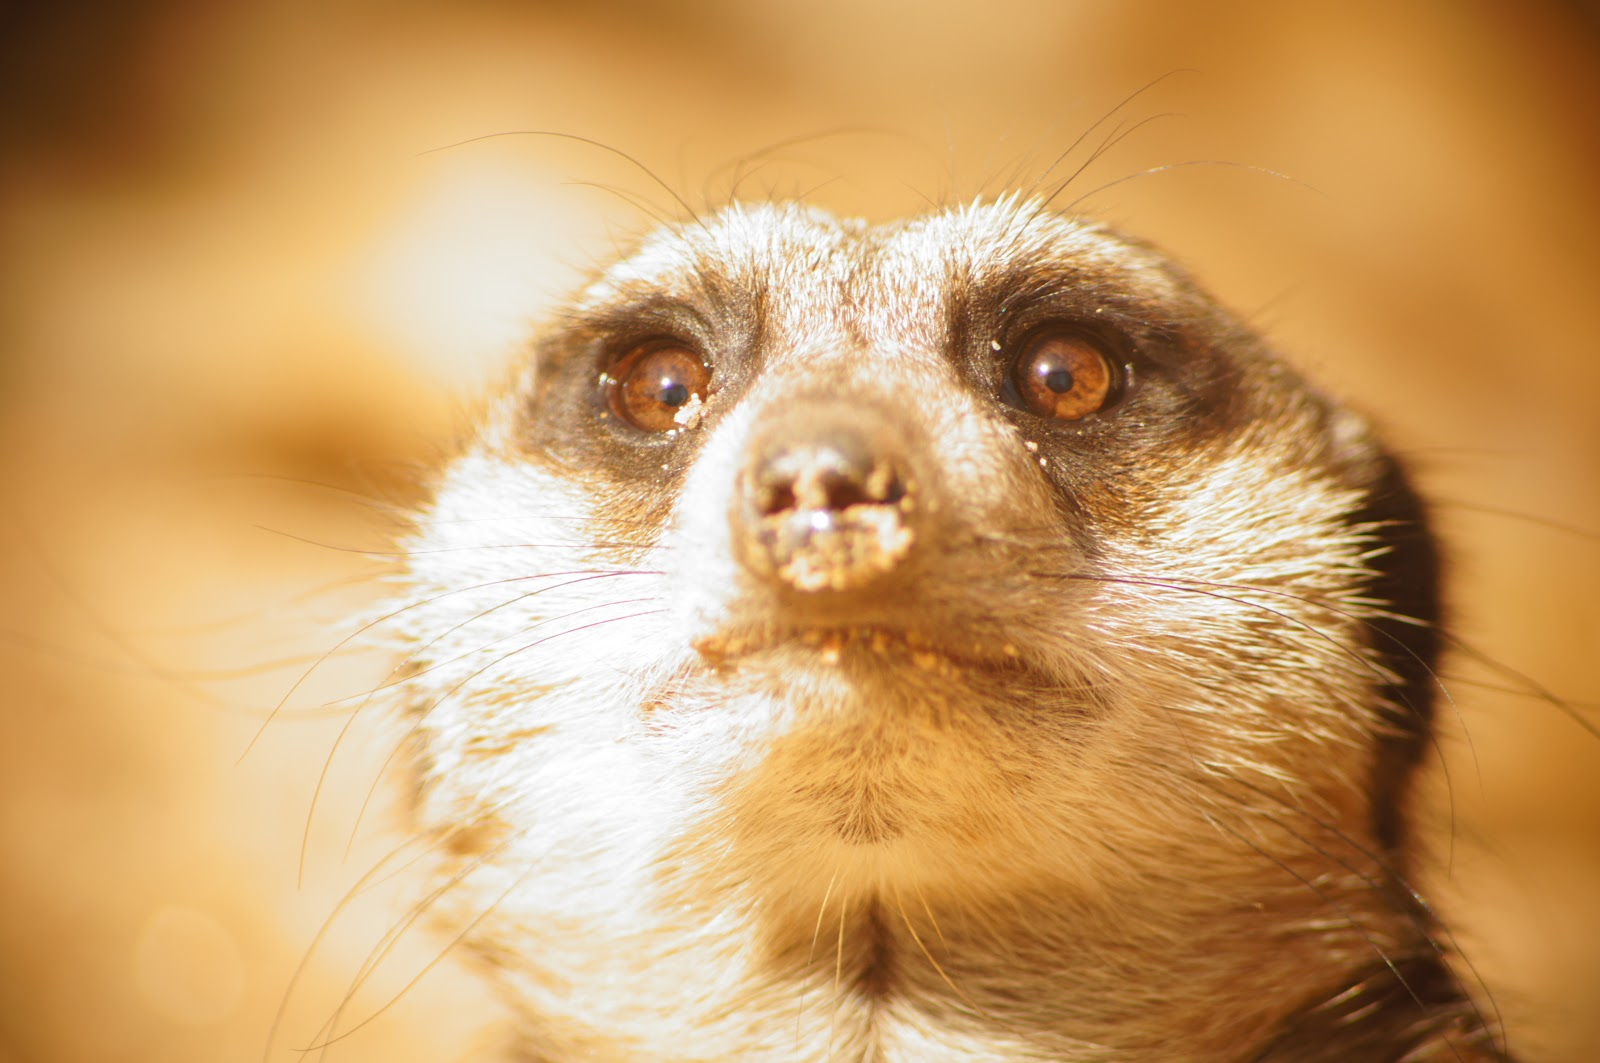 copyright-free picture of a meerkat